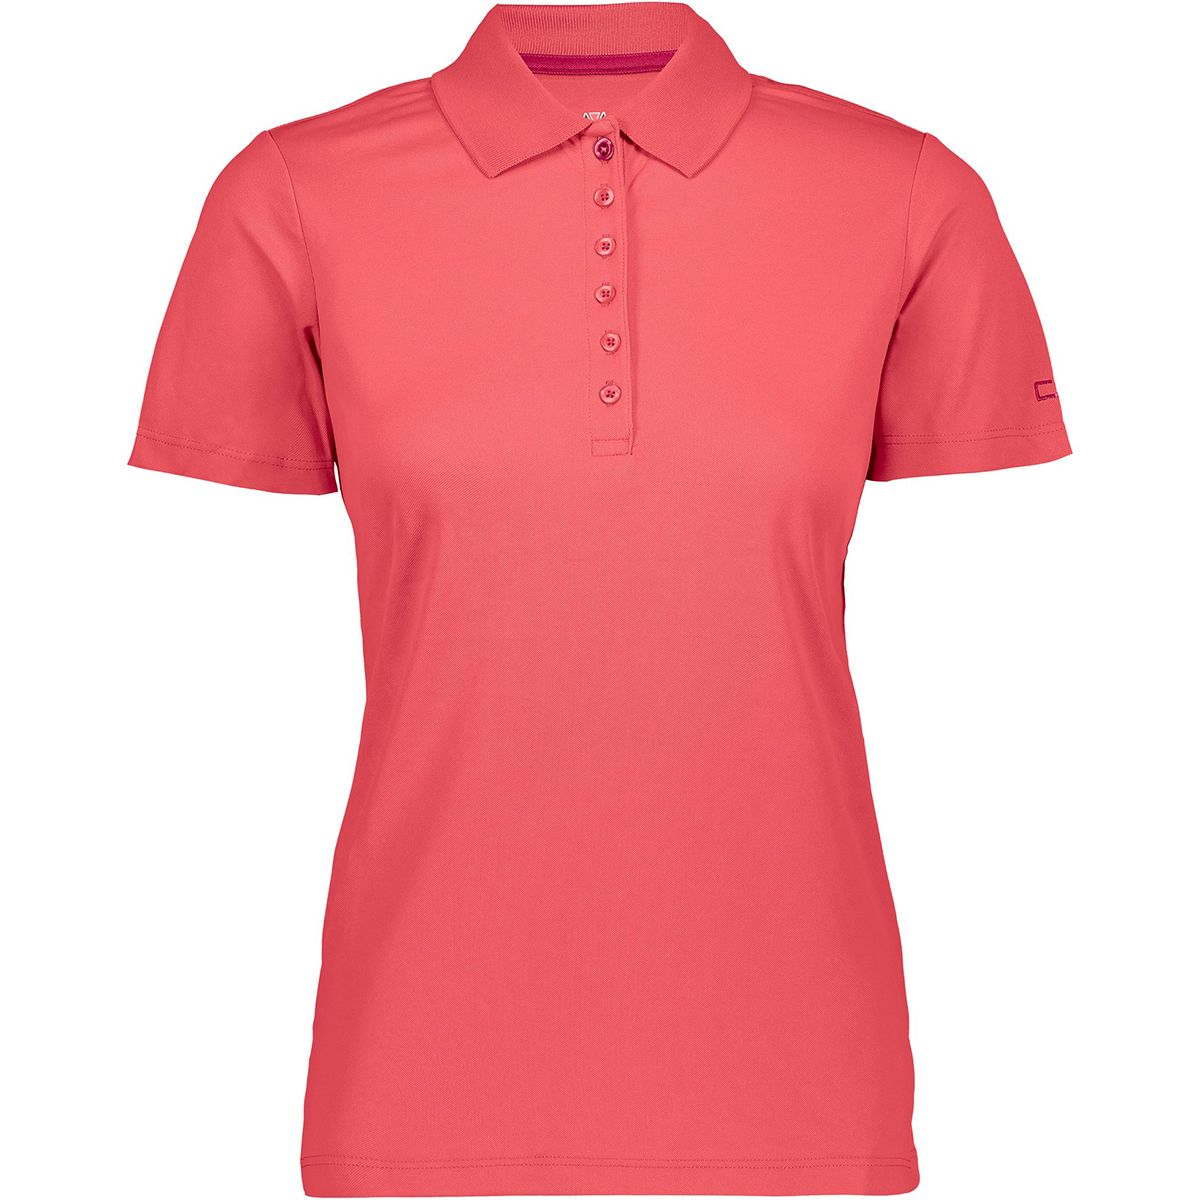 CMP Damen Polo T-Shirt (Größe S, Pink) | T-Shirts Funktion > Damen